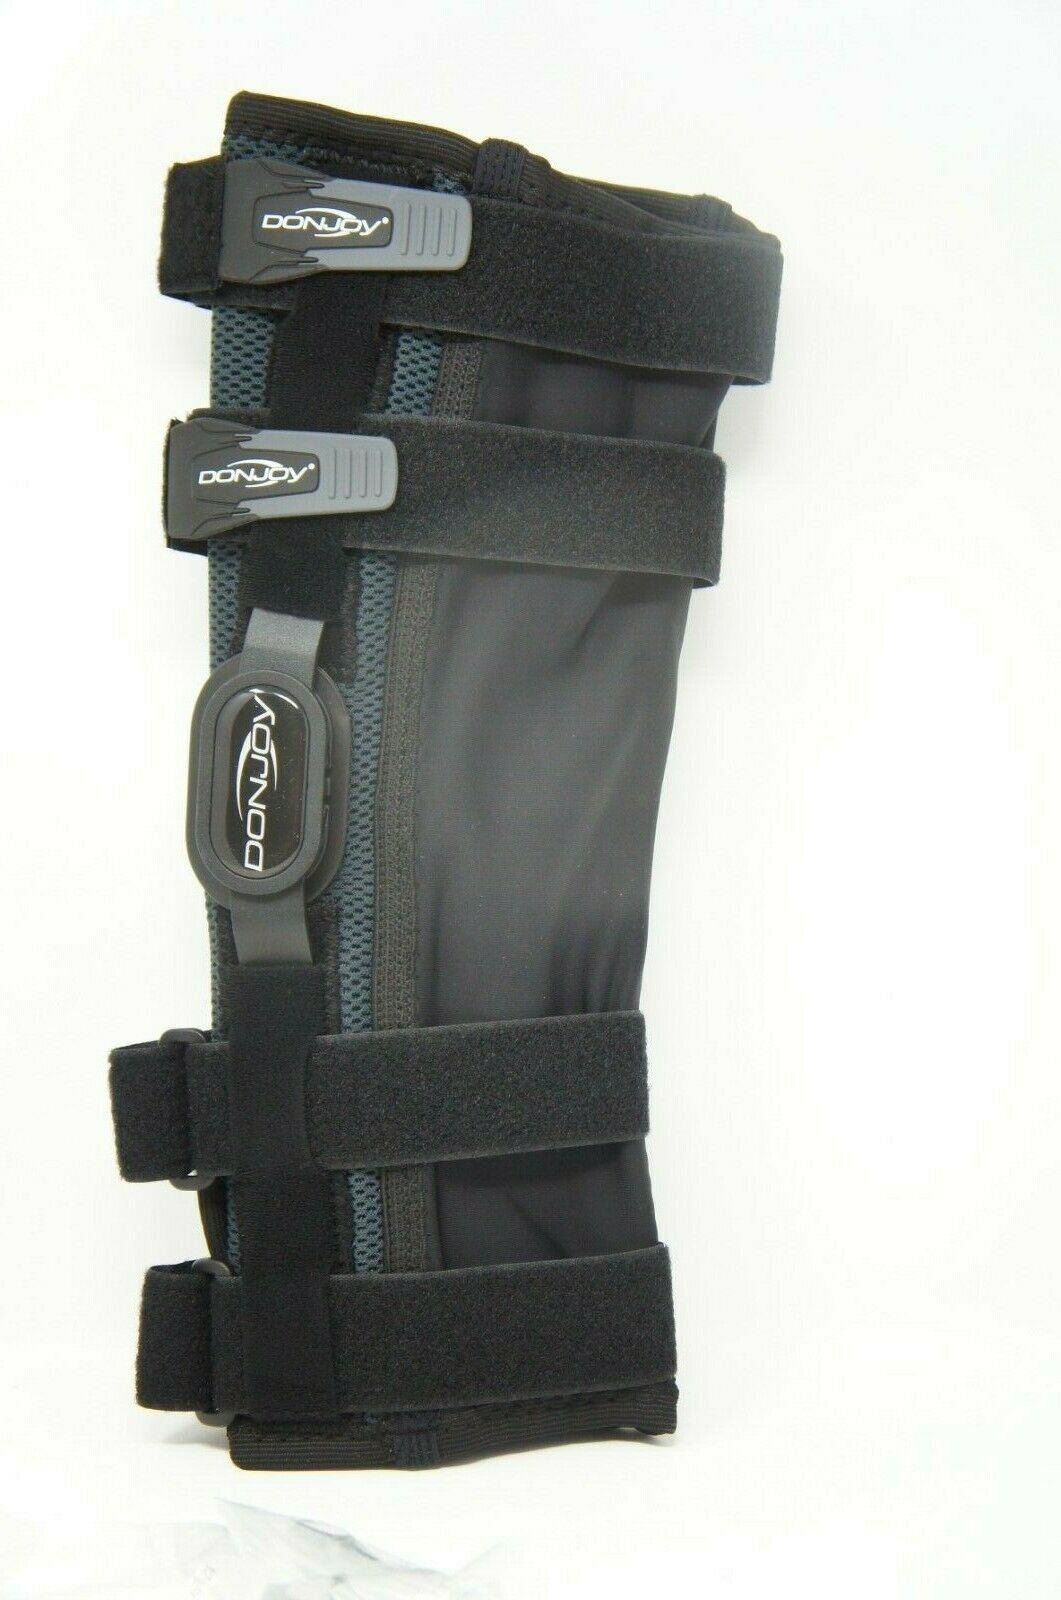 DonJoy Playmaker II Knee Support Brace w/o Patella Donut Spacer Wrap Small